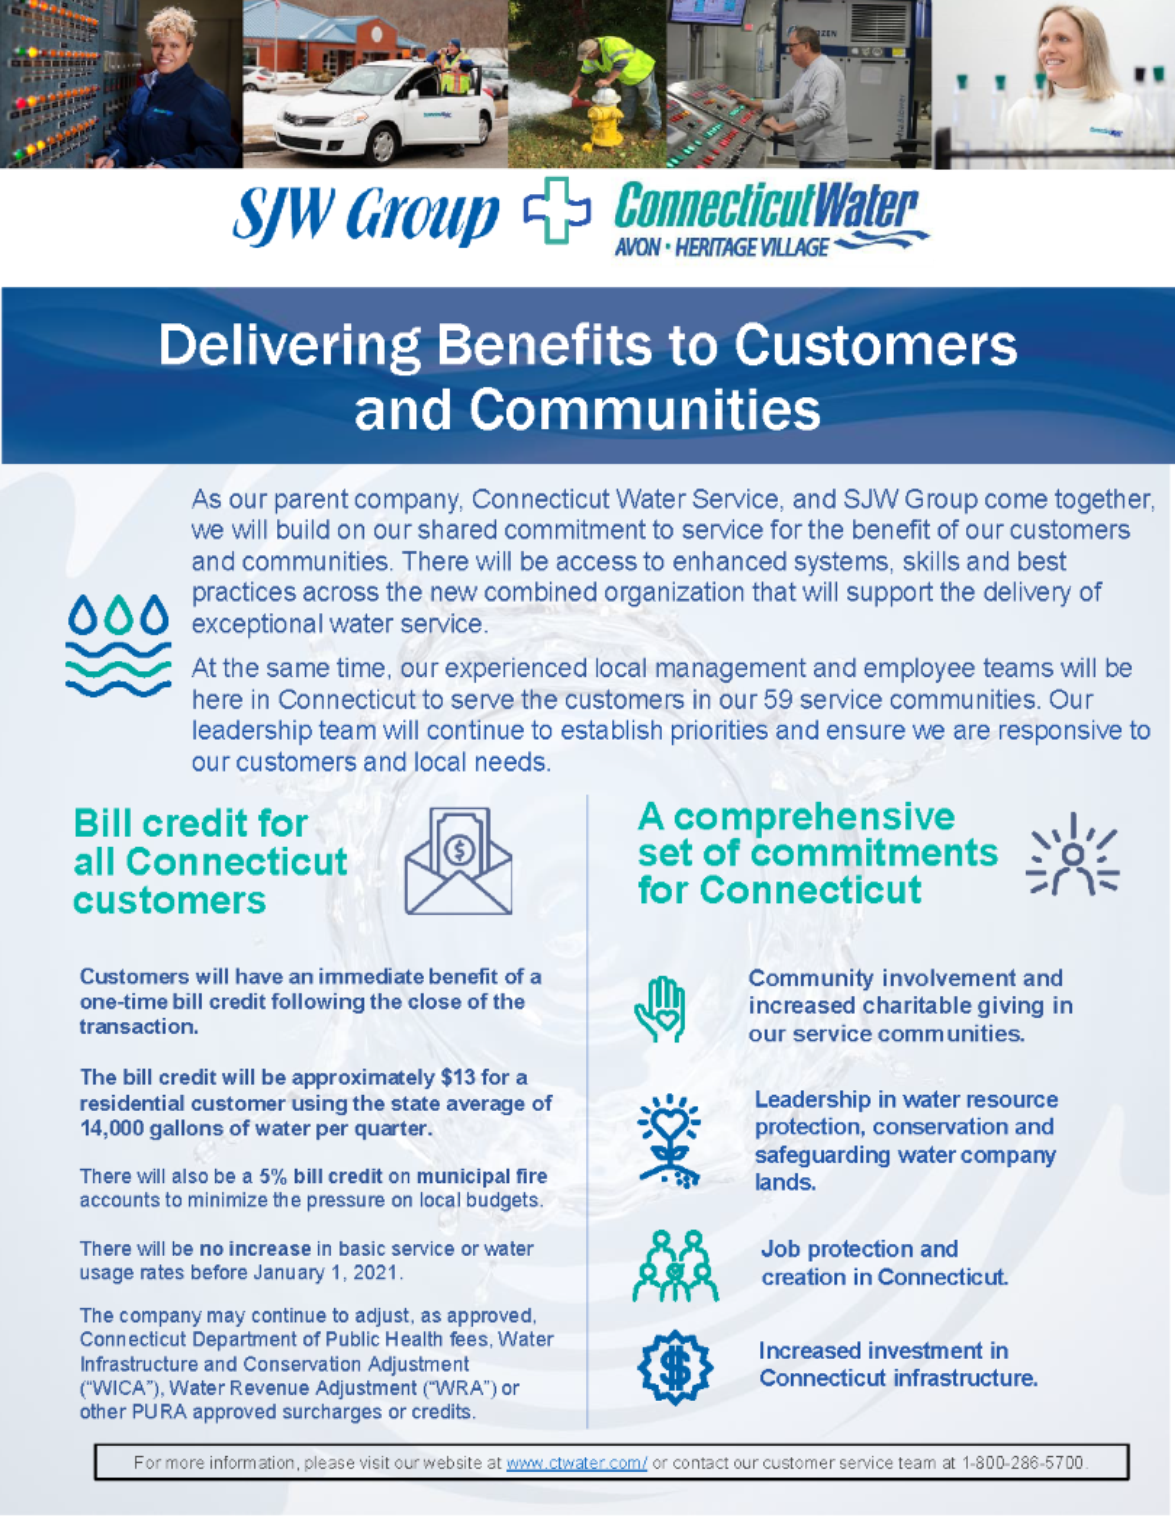 Delivering Benefits to Customers and Communities image